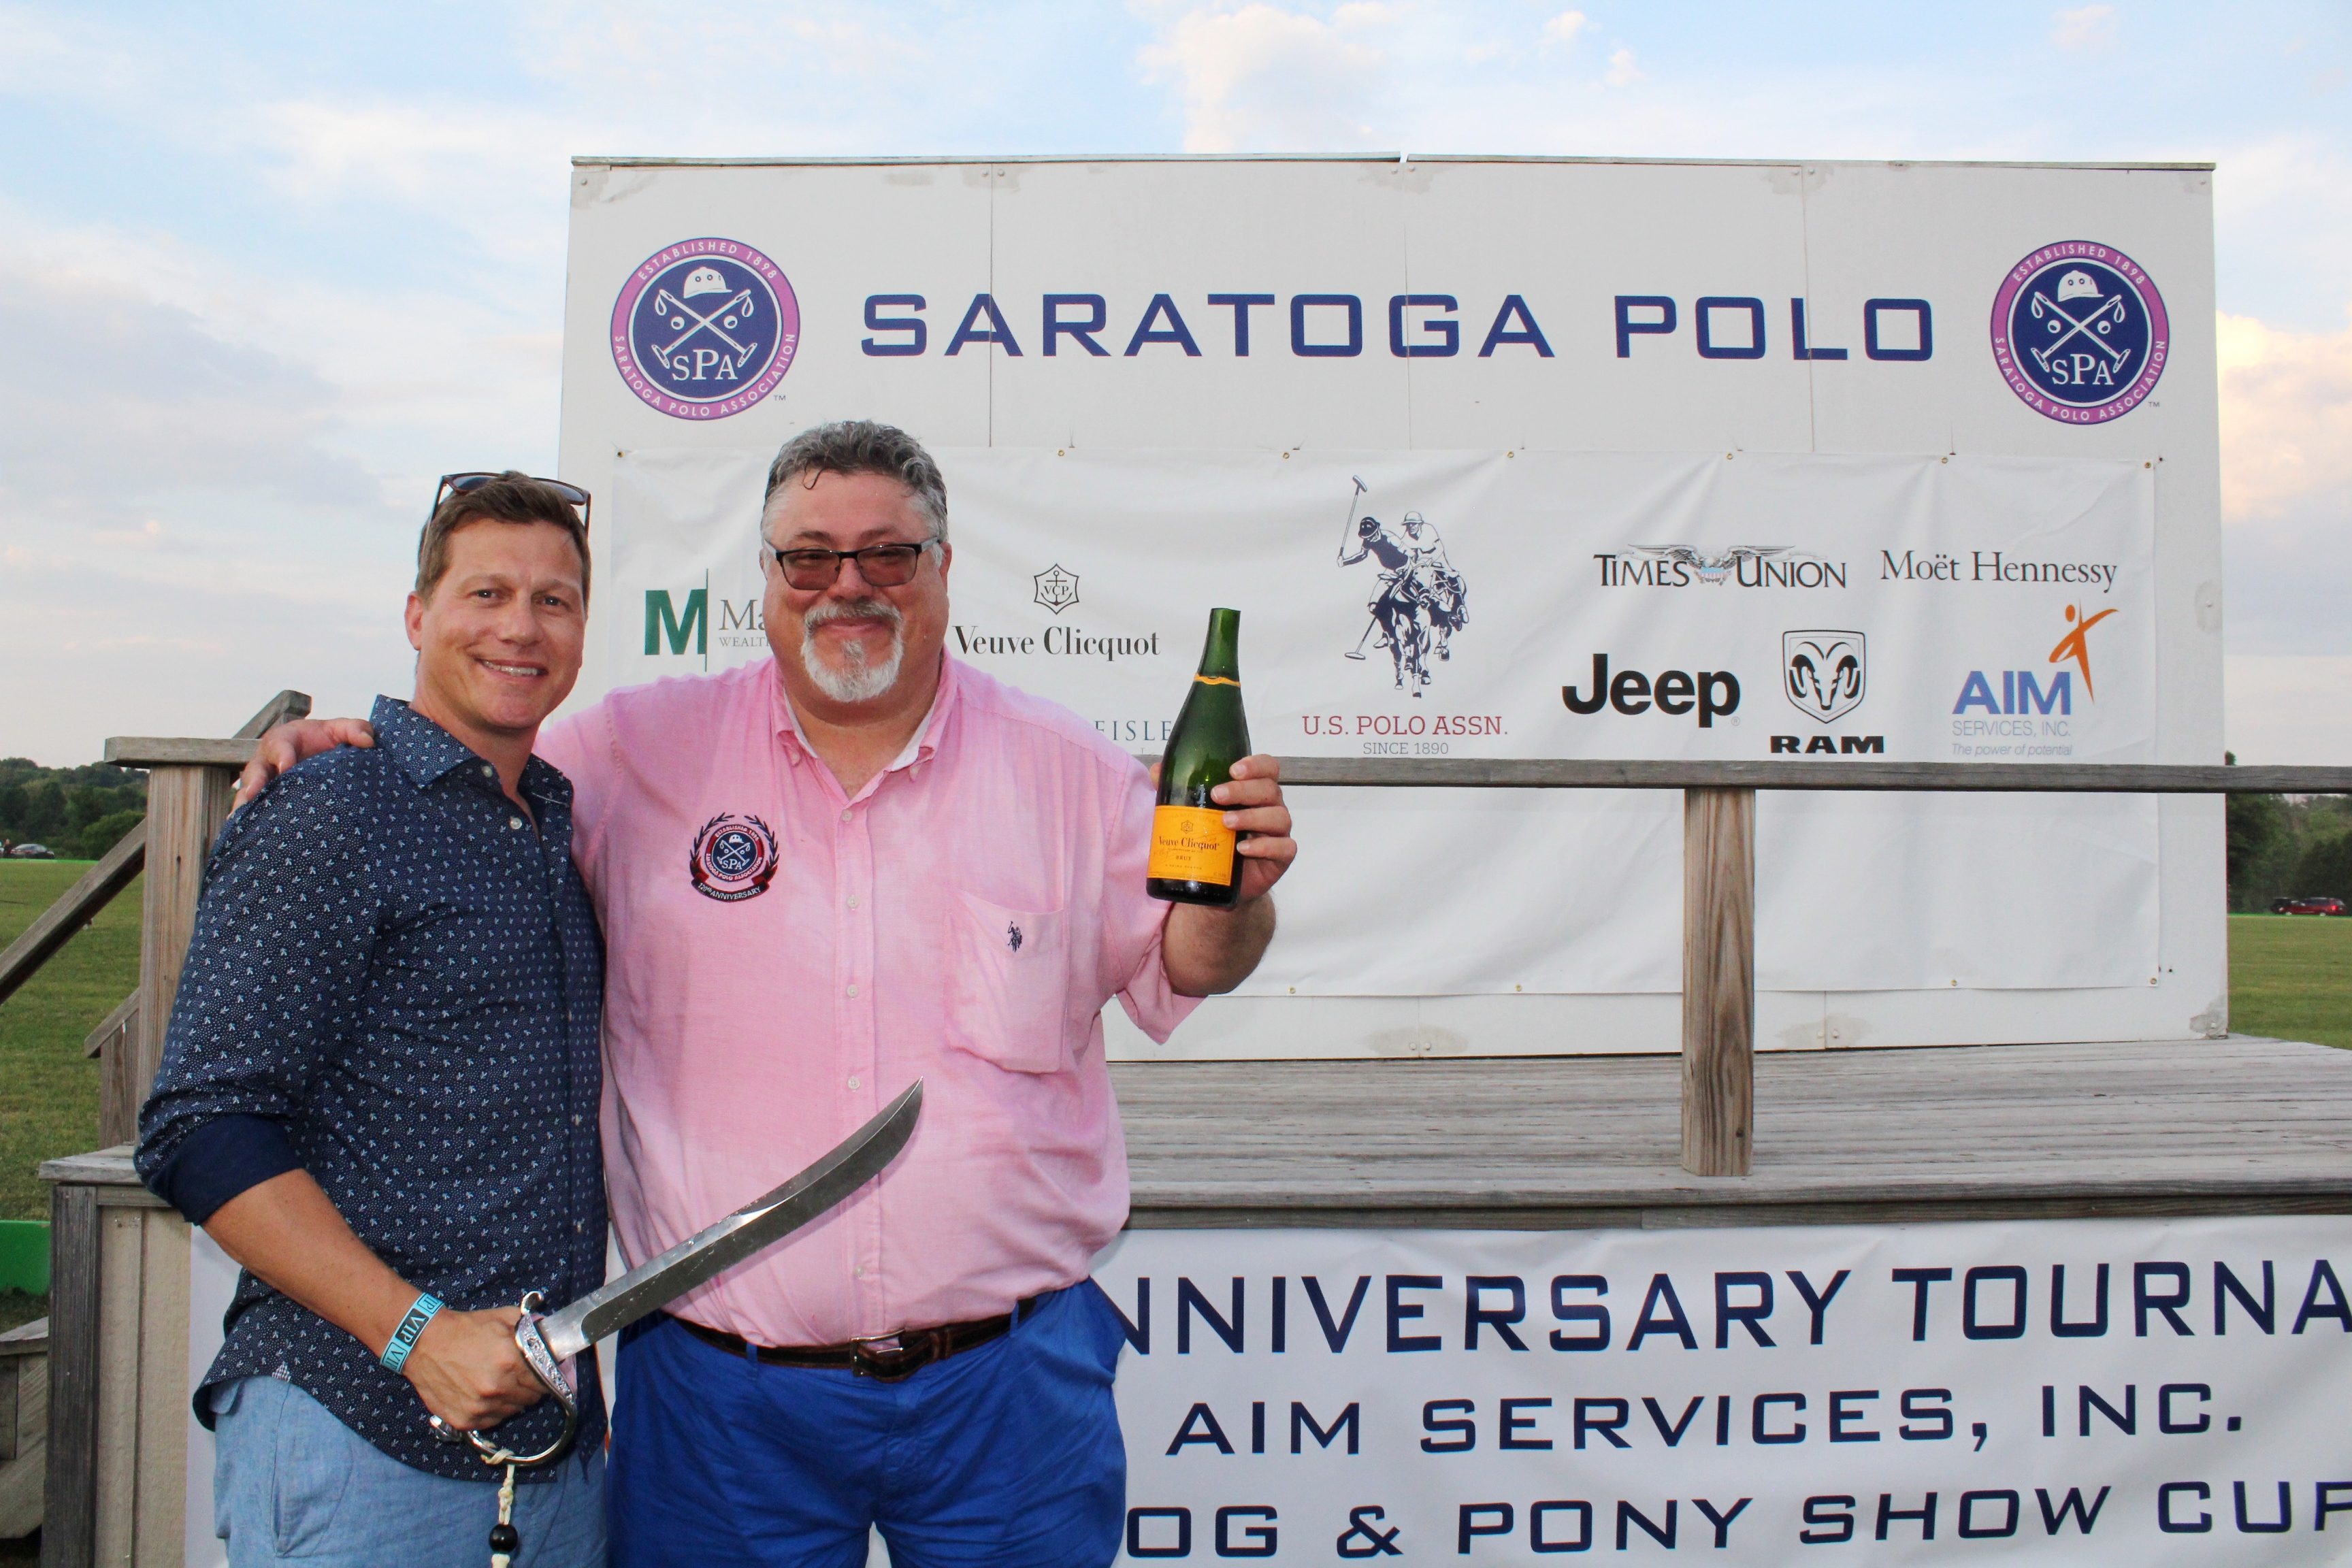 Two men with sabored champagne bottle and sword at the Saratoga Dog & Pony Show to benefit AIM Services, Inc.